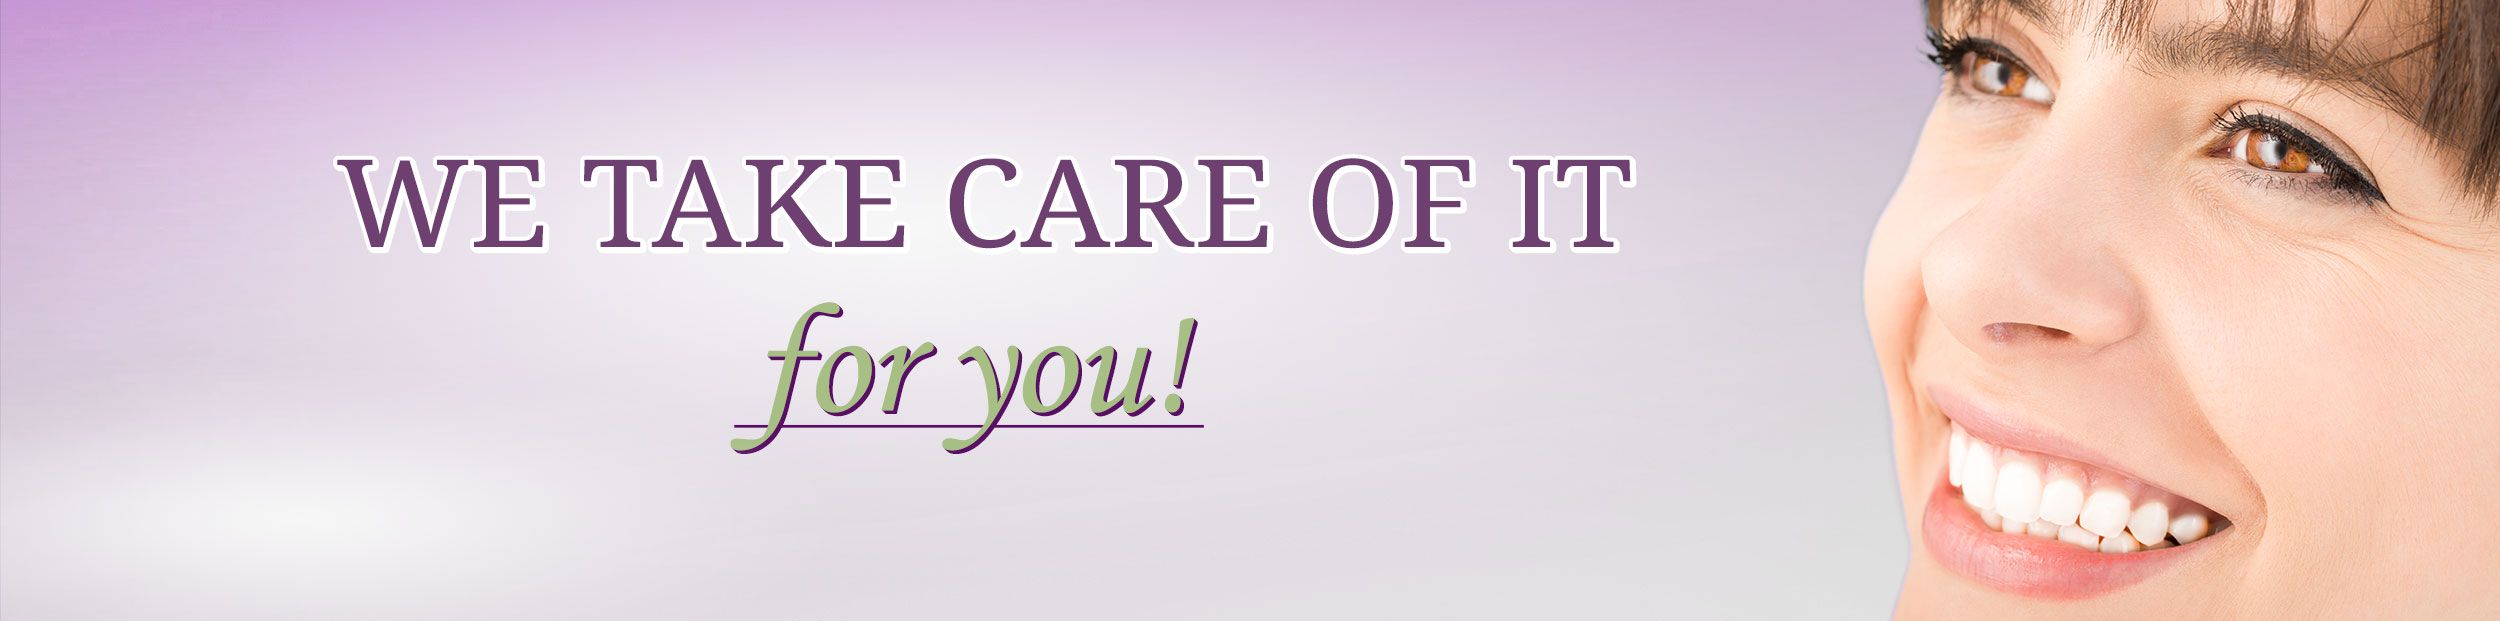 We take care of it for you banner with woman smiling